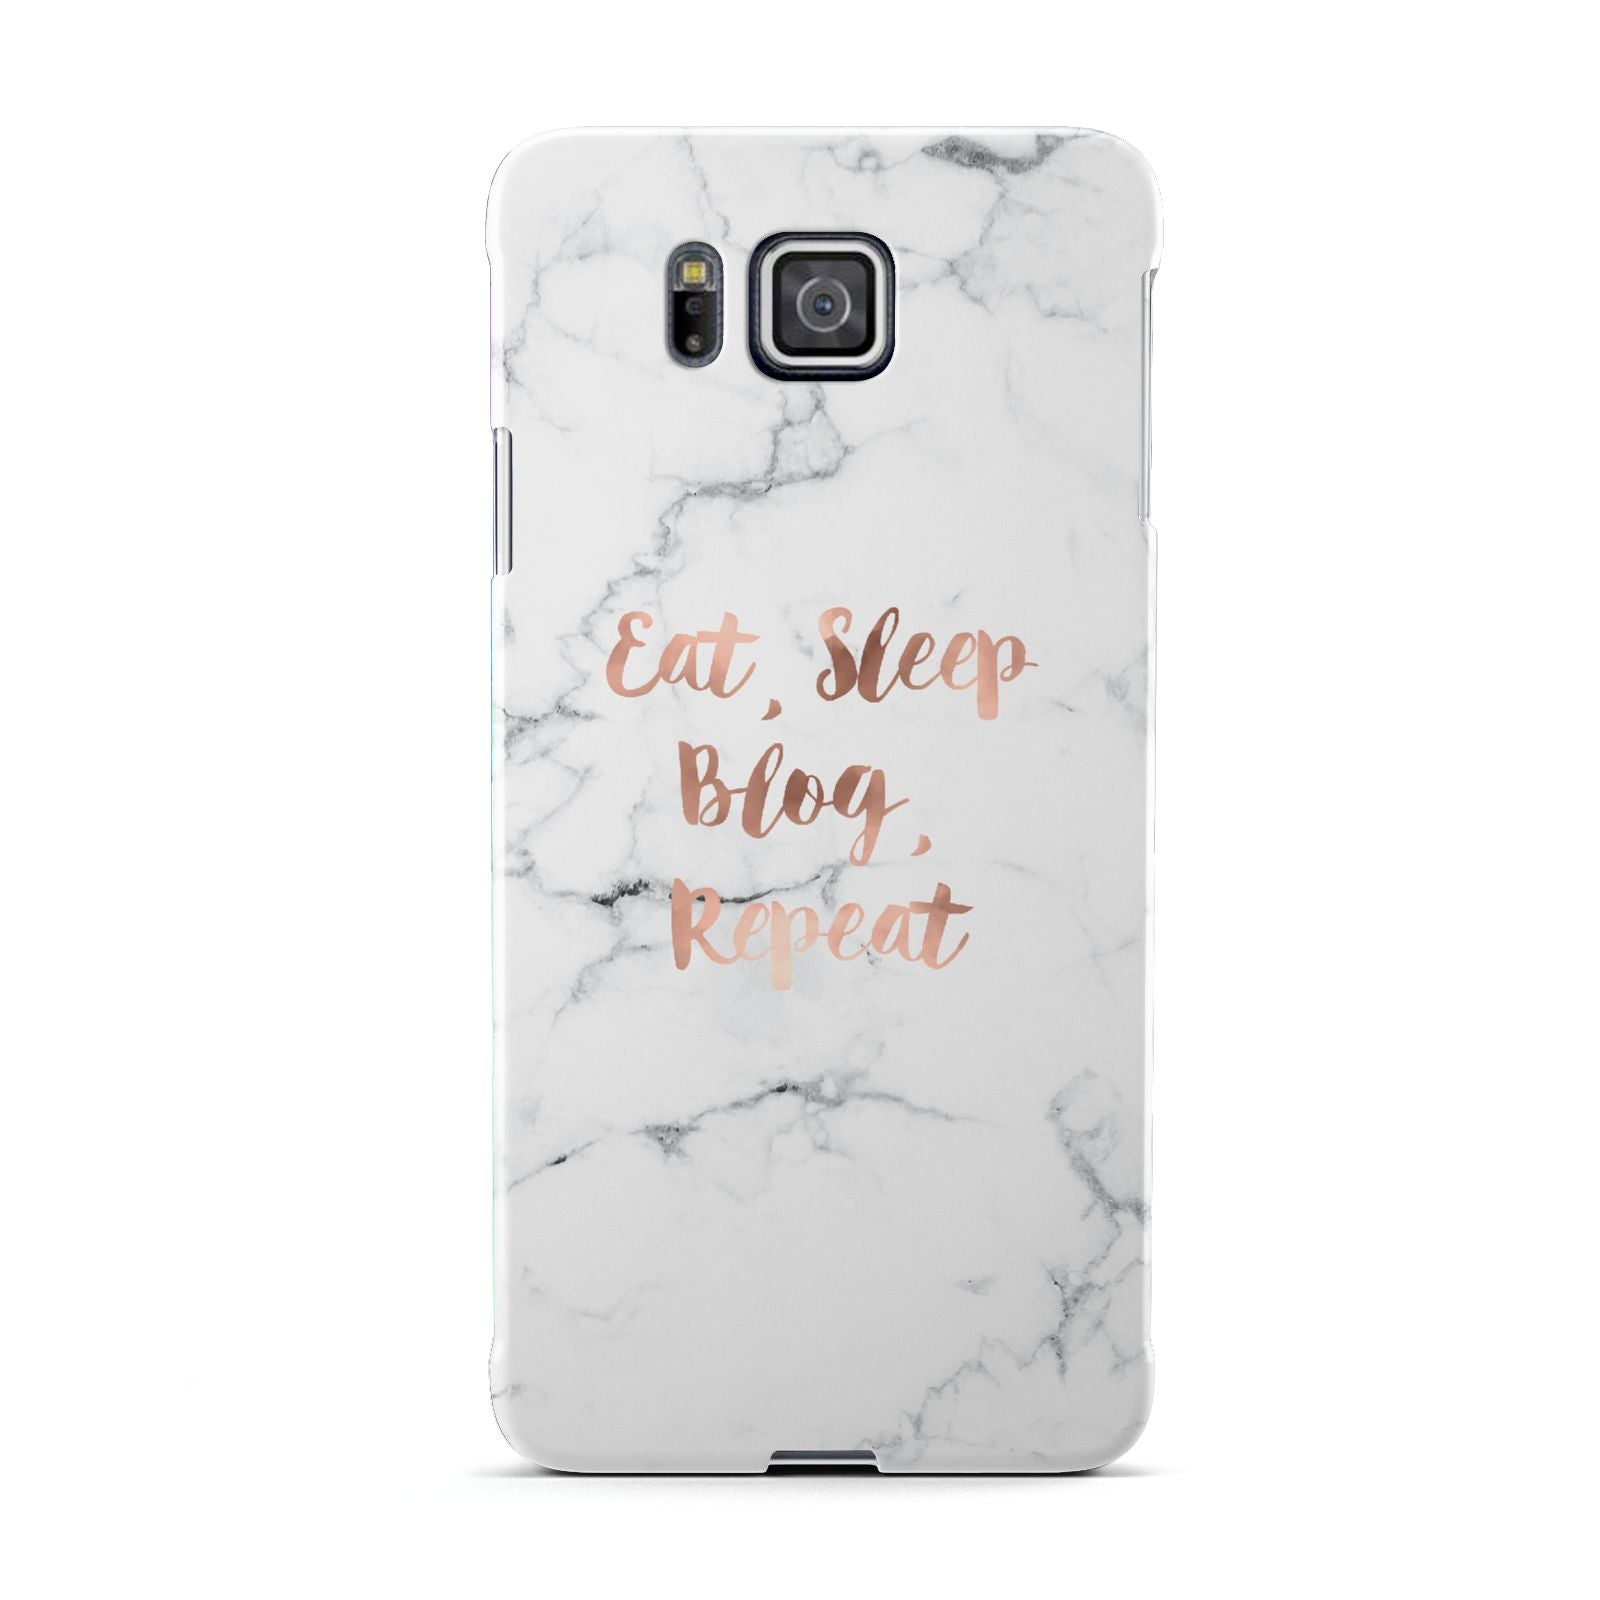 Eat Sleep Blog Repeat Marble Effect Samsung Galaxy Alpha Case